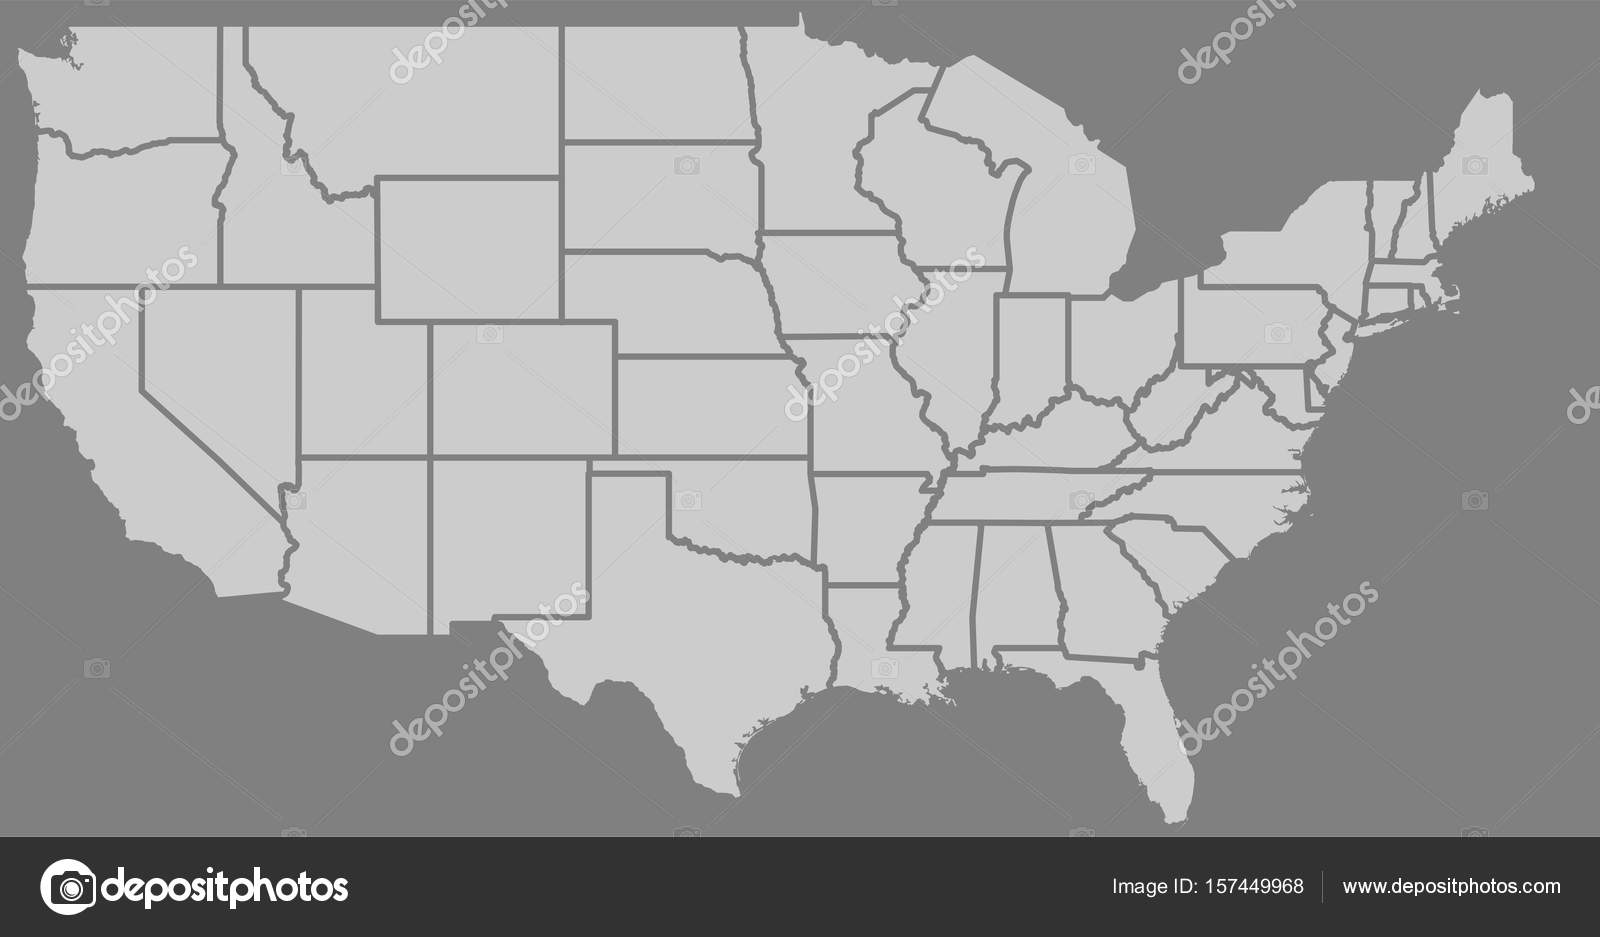 Blank Similar High Detailed USA Map Isolated On Gray Background - Us map with state lines